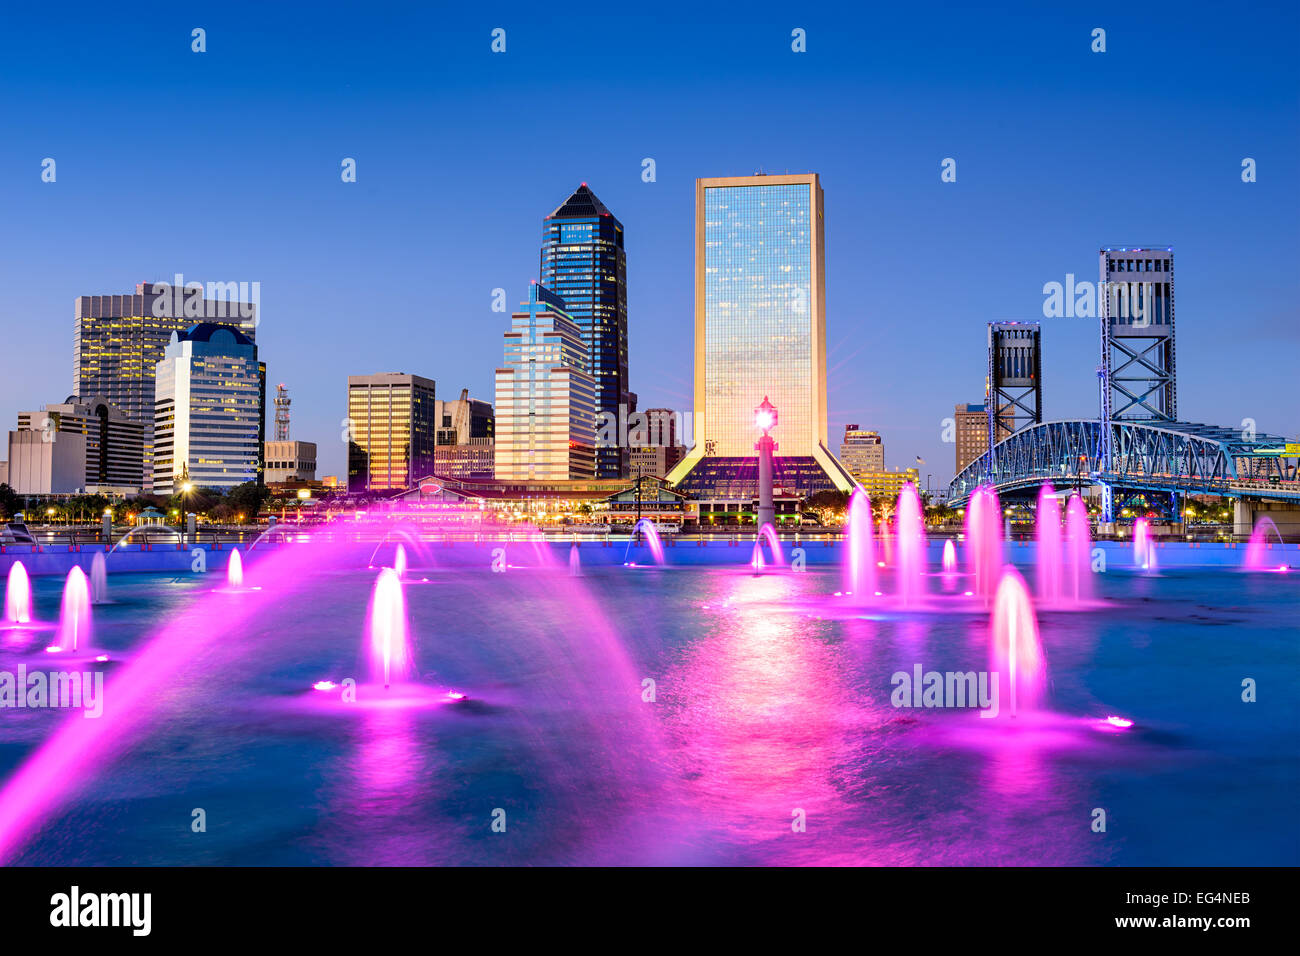 Jacksonville, Florida, USA city skyline at the fountain. - Stock Image